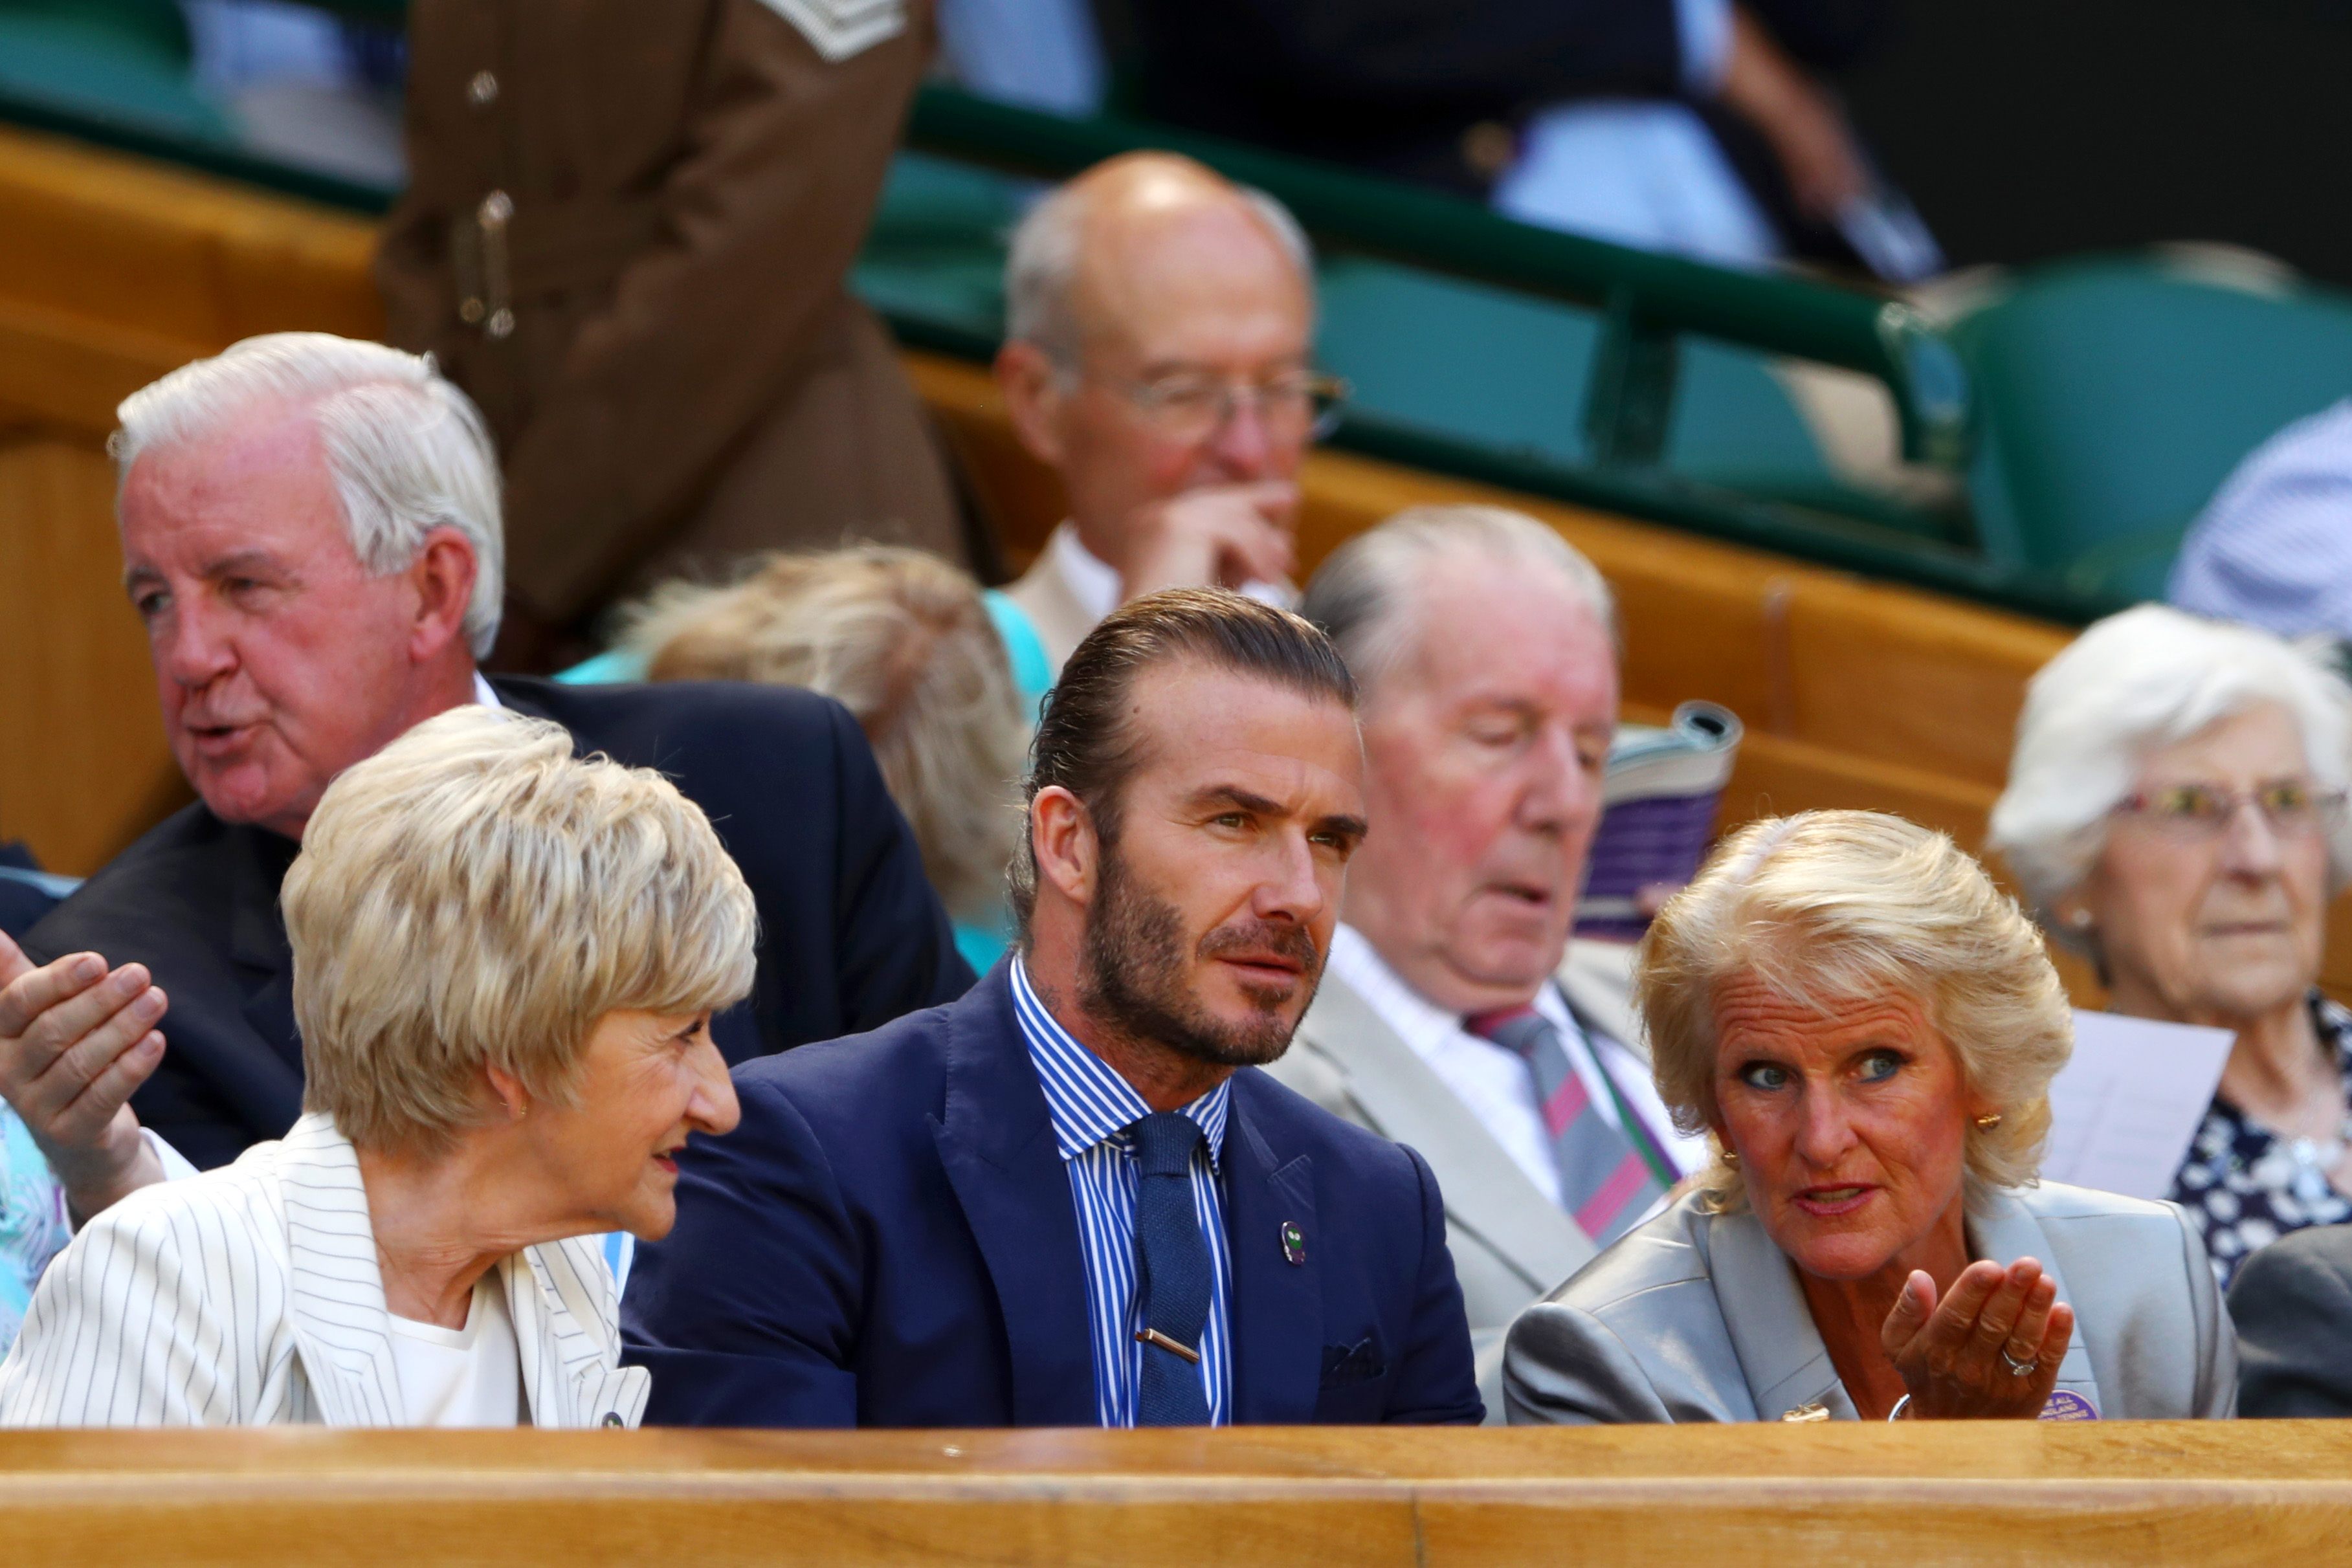 LONDON, ENGLAND - JULY 07: Gill Brook in discussion with David Beckham and Sandra Beckham in the centre court royal box on day five of the Wimbledon Lawn Tennis Championships at the All England Lawn Tennis and Croquet Club on July 7, 2017 in London, England. (Photo by Michael Steele/Getty Images)